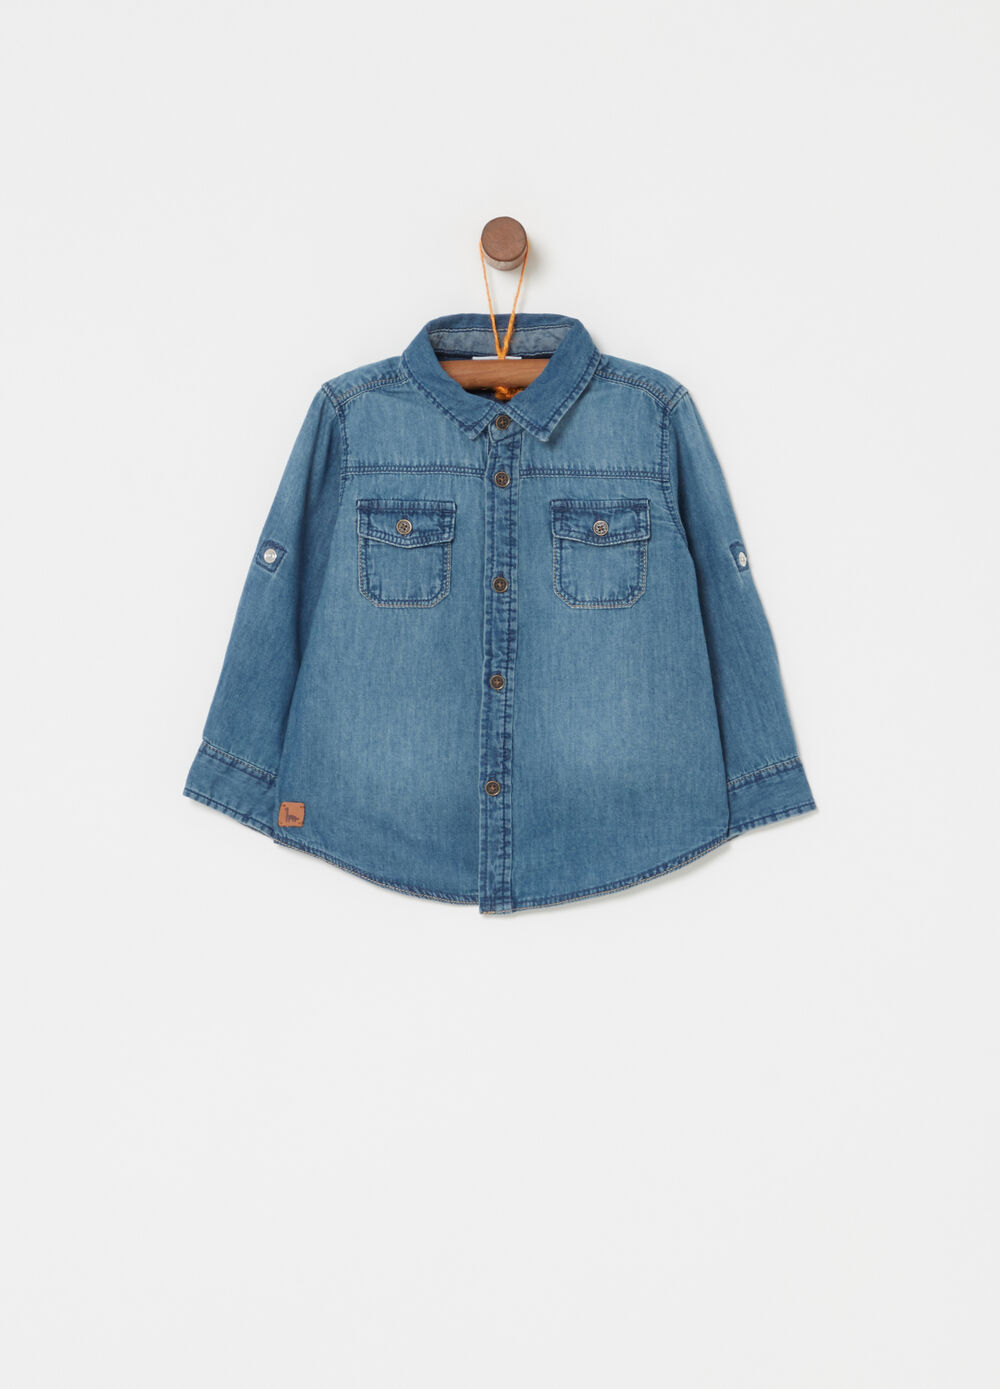 Washed denim shirt with pockets